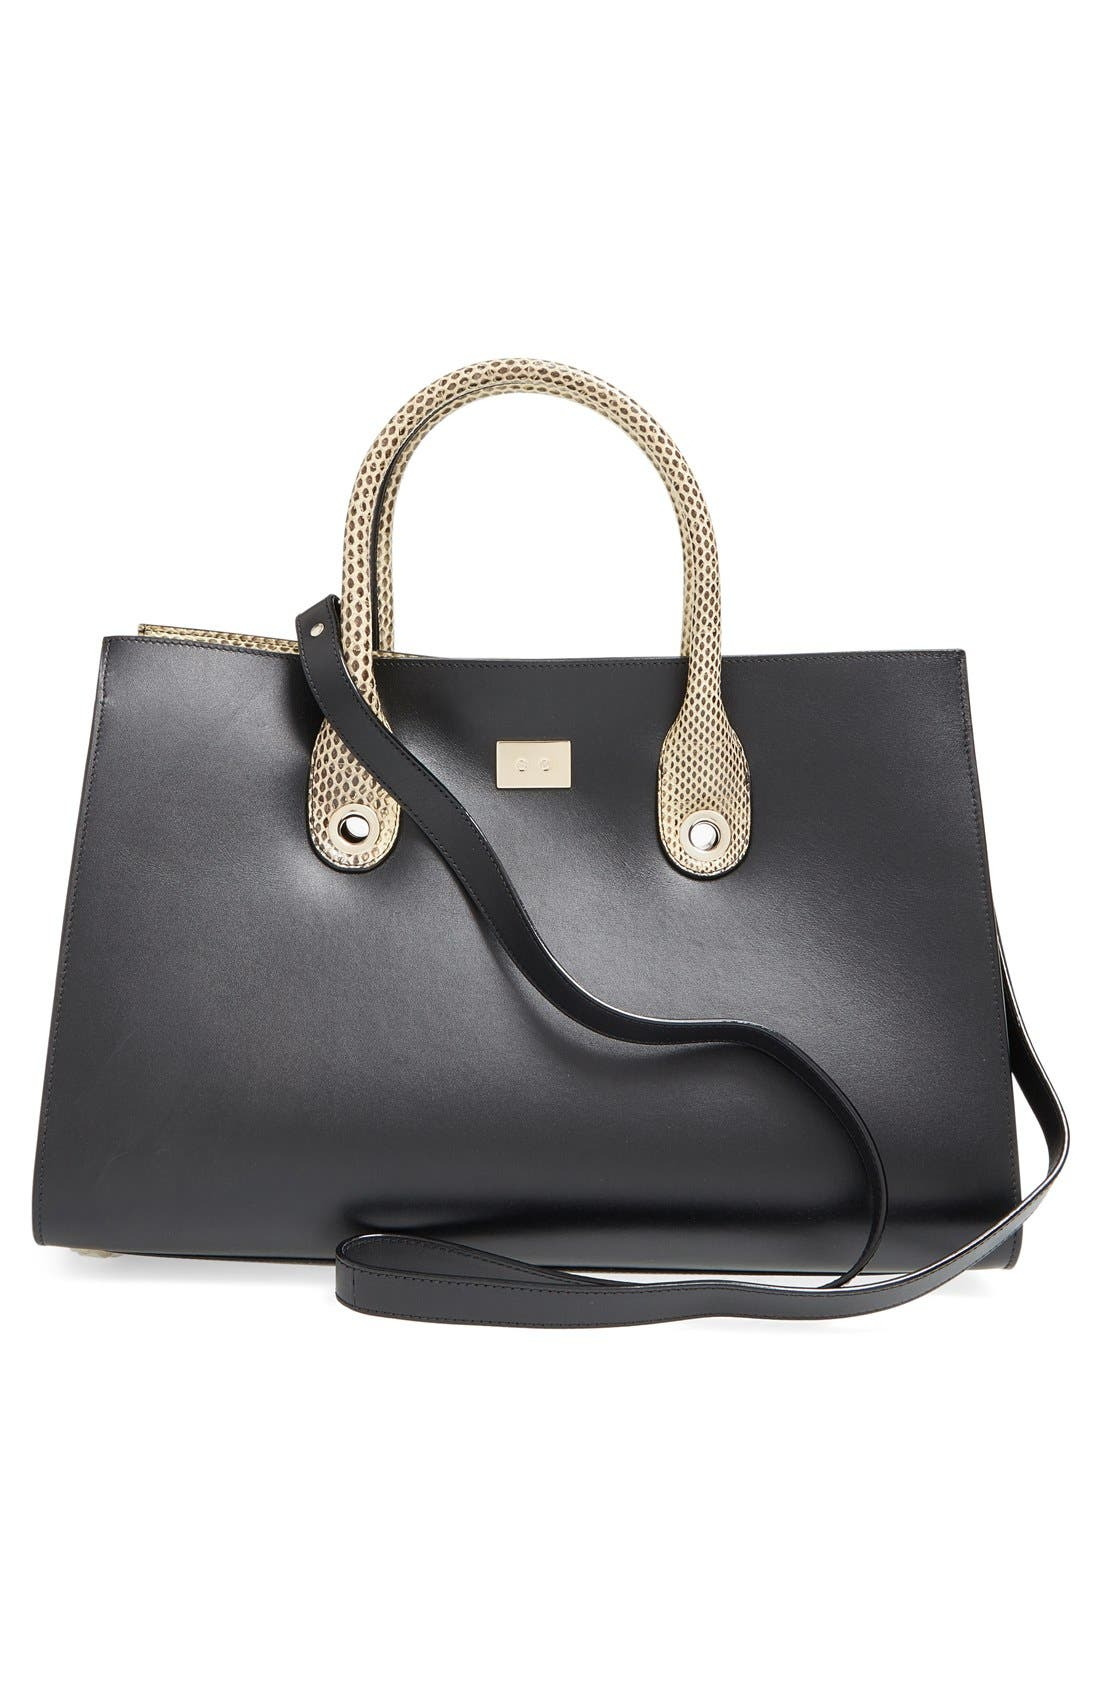 Alternate Image 3  - Jimmy Choo 'Riley' Leather Tote